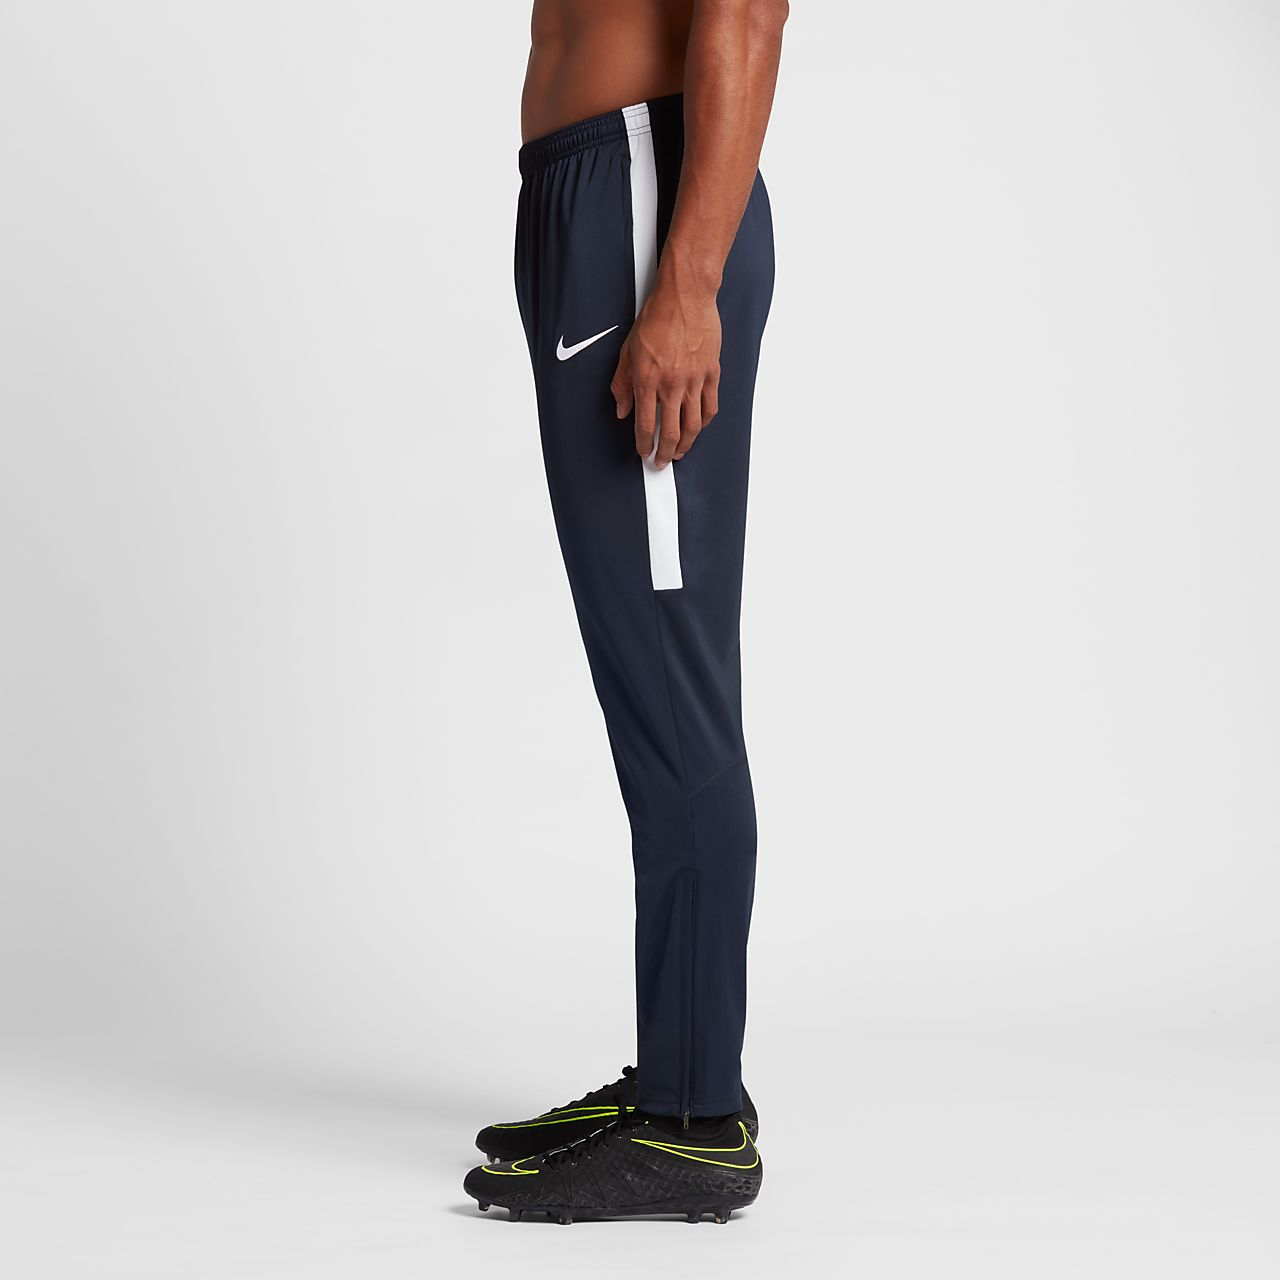 ... Nike Dri-FIT Academy Men's Soccer Pants